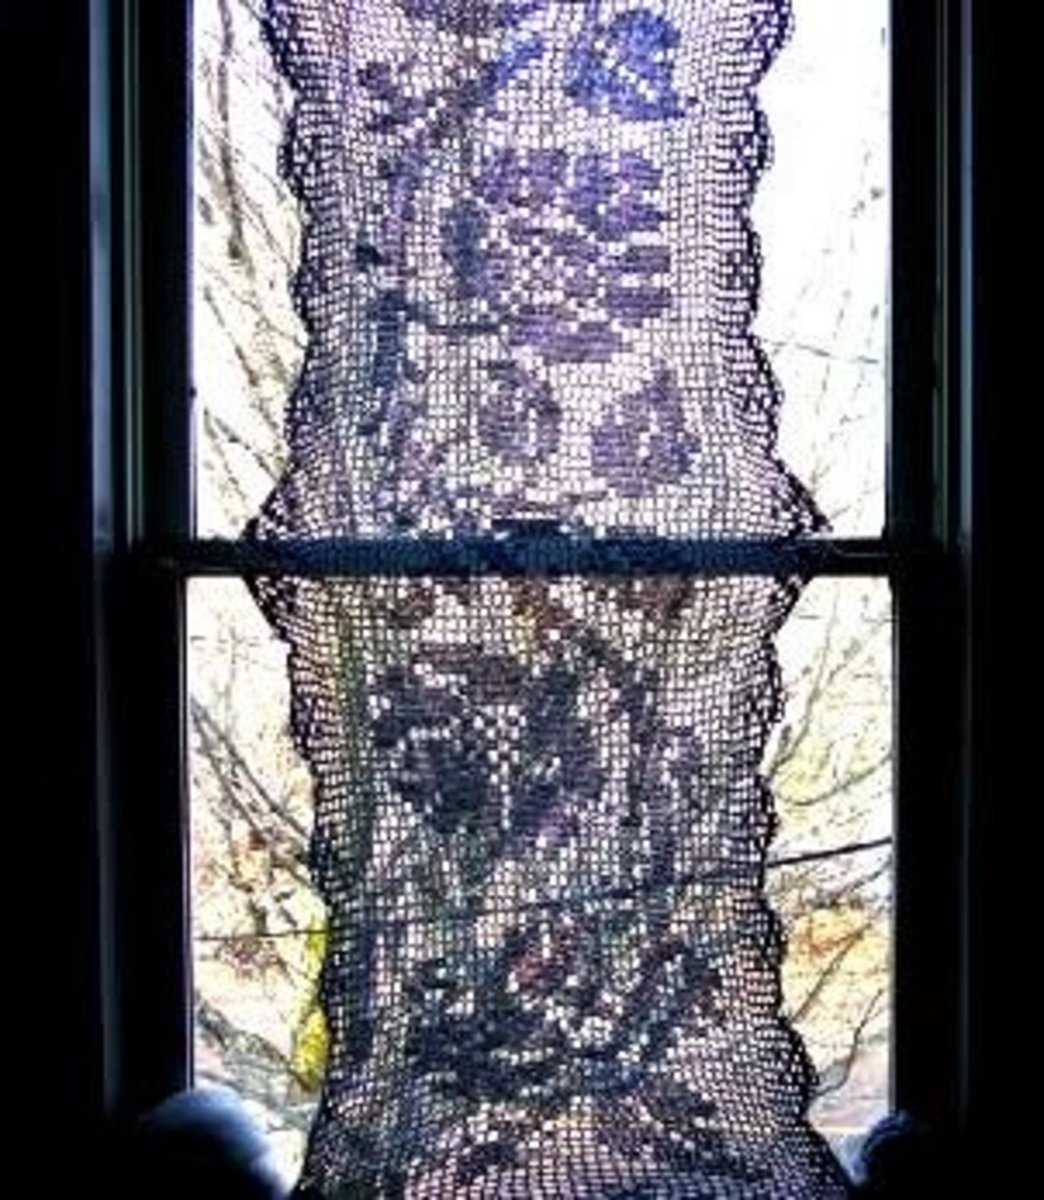 Window Hanging Worked in Heavier Crochet Cotton